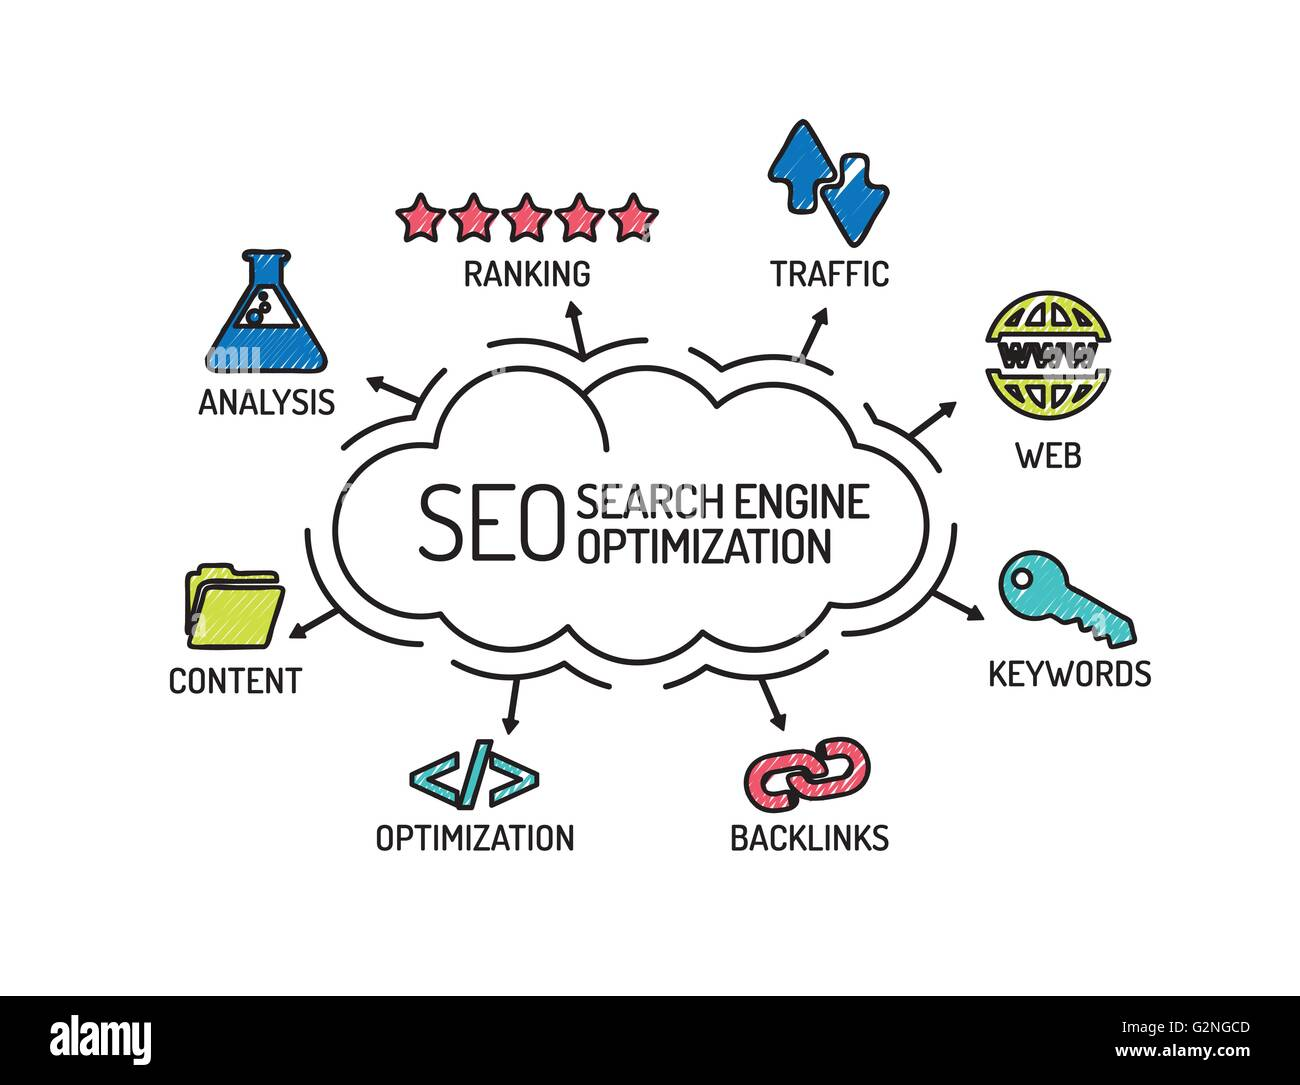 SEO Search Engine Optimization. Chart with keywords and icons. Sketch - Stock Vector